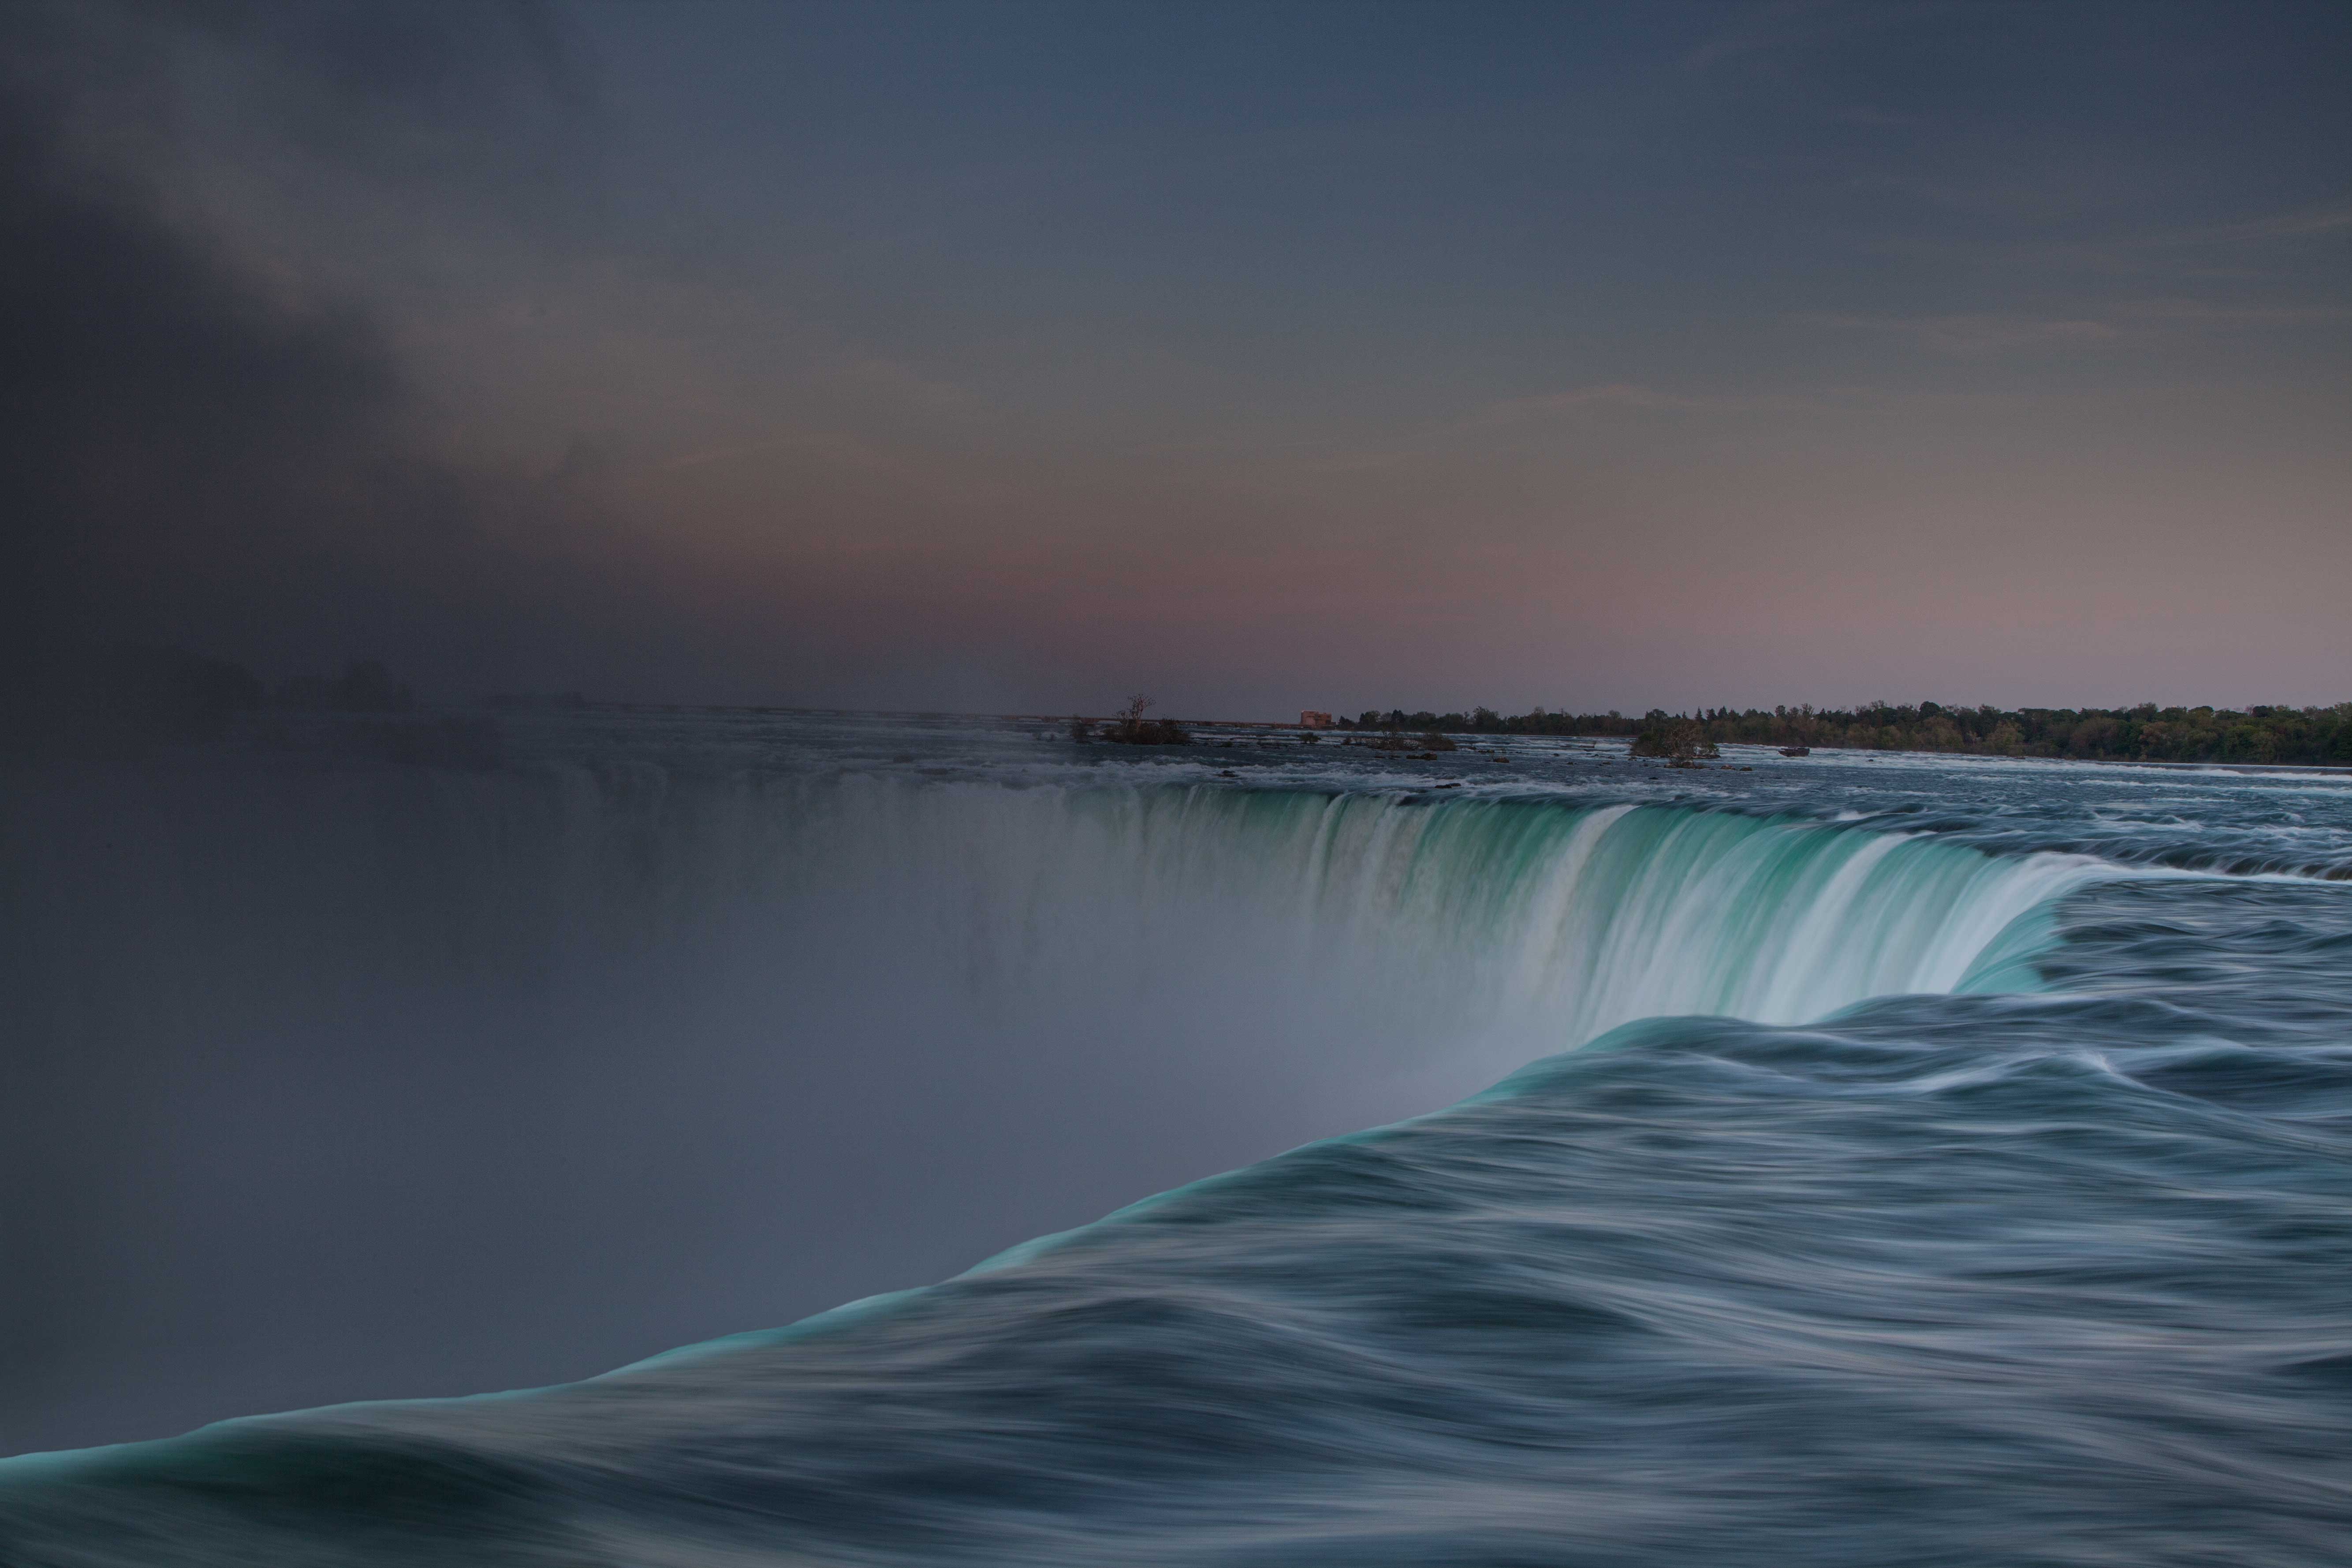 Horseshoe Falls at twilight, from the Canadian side of Niagara Falls